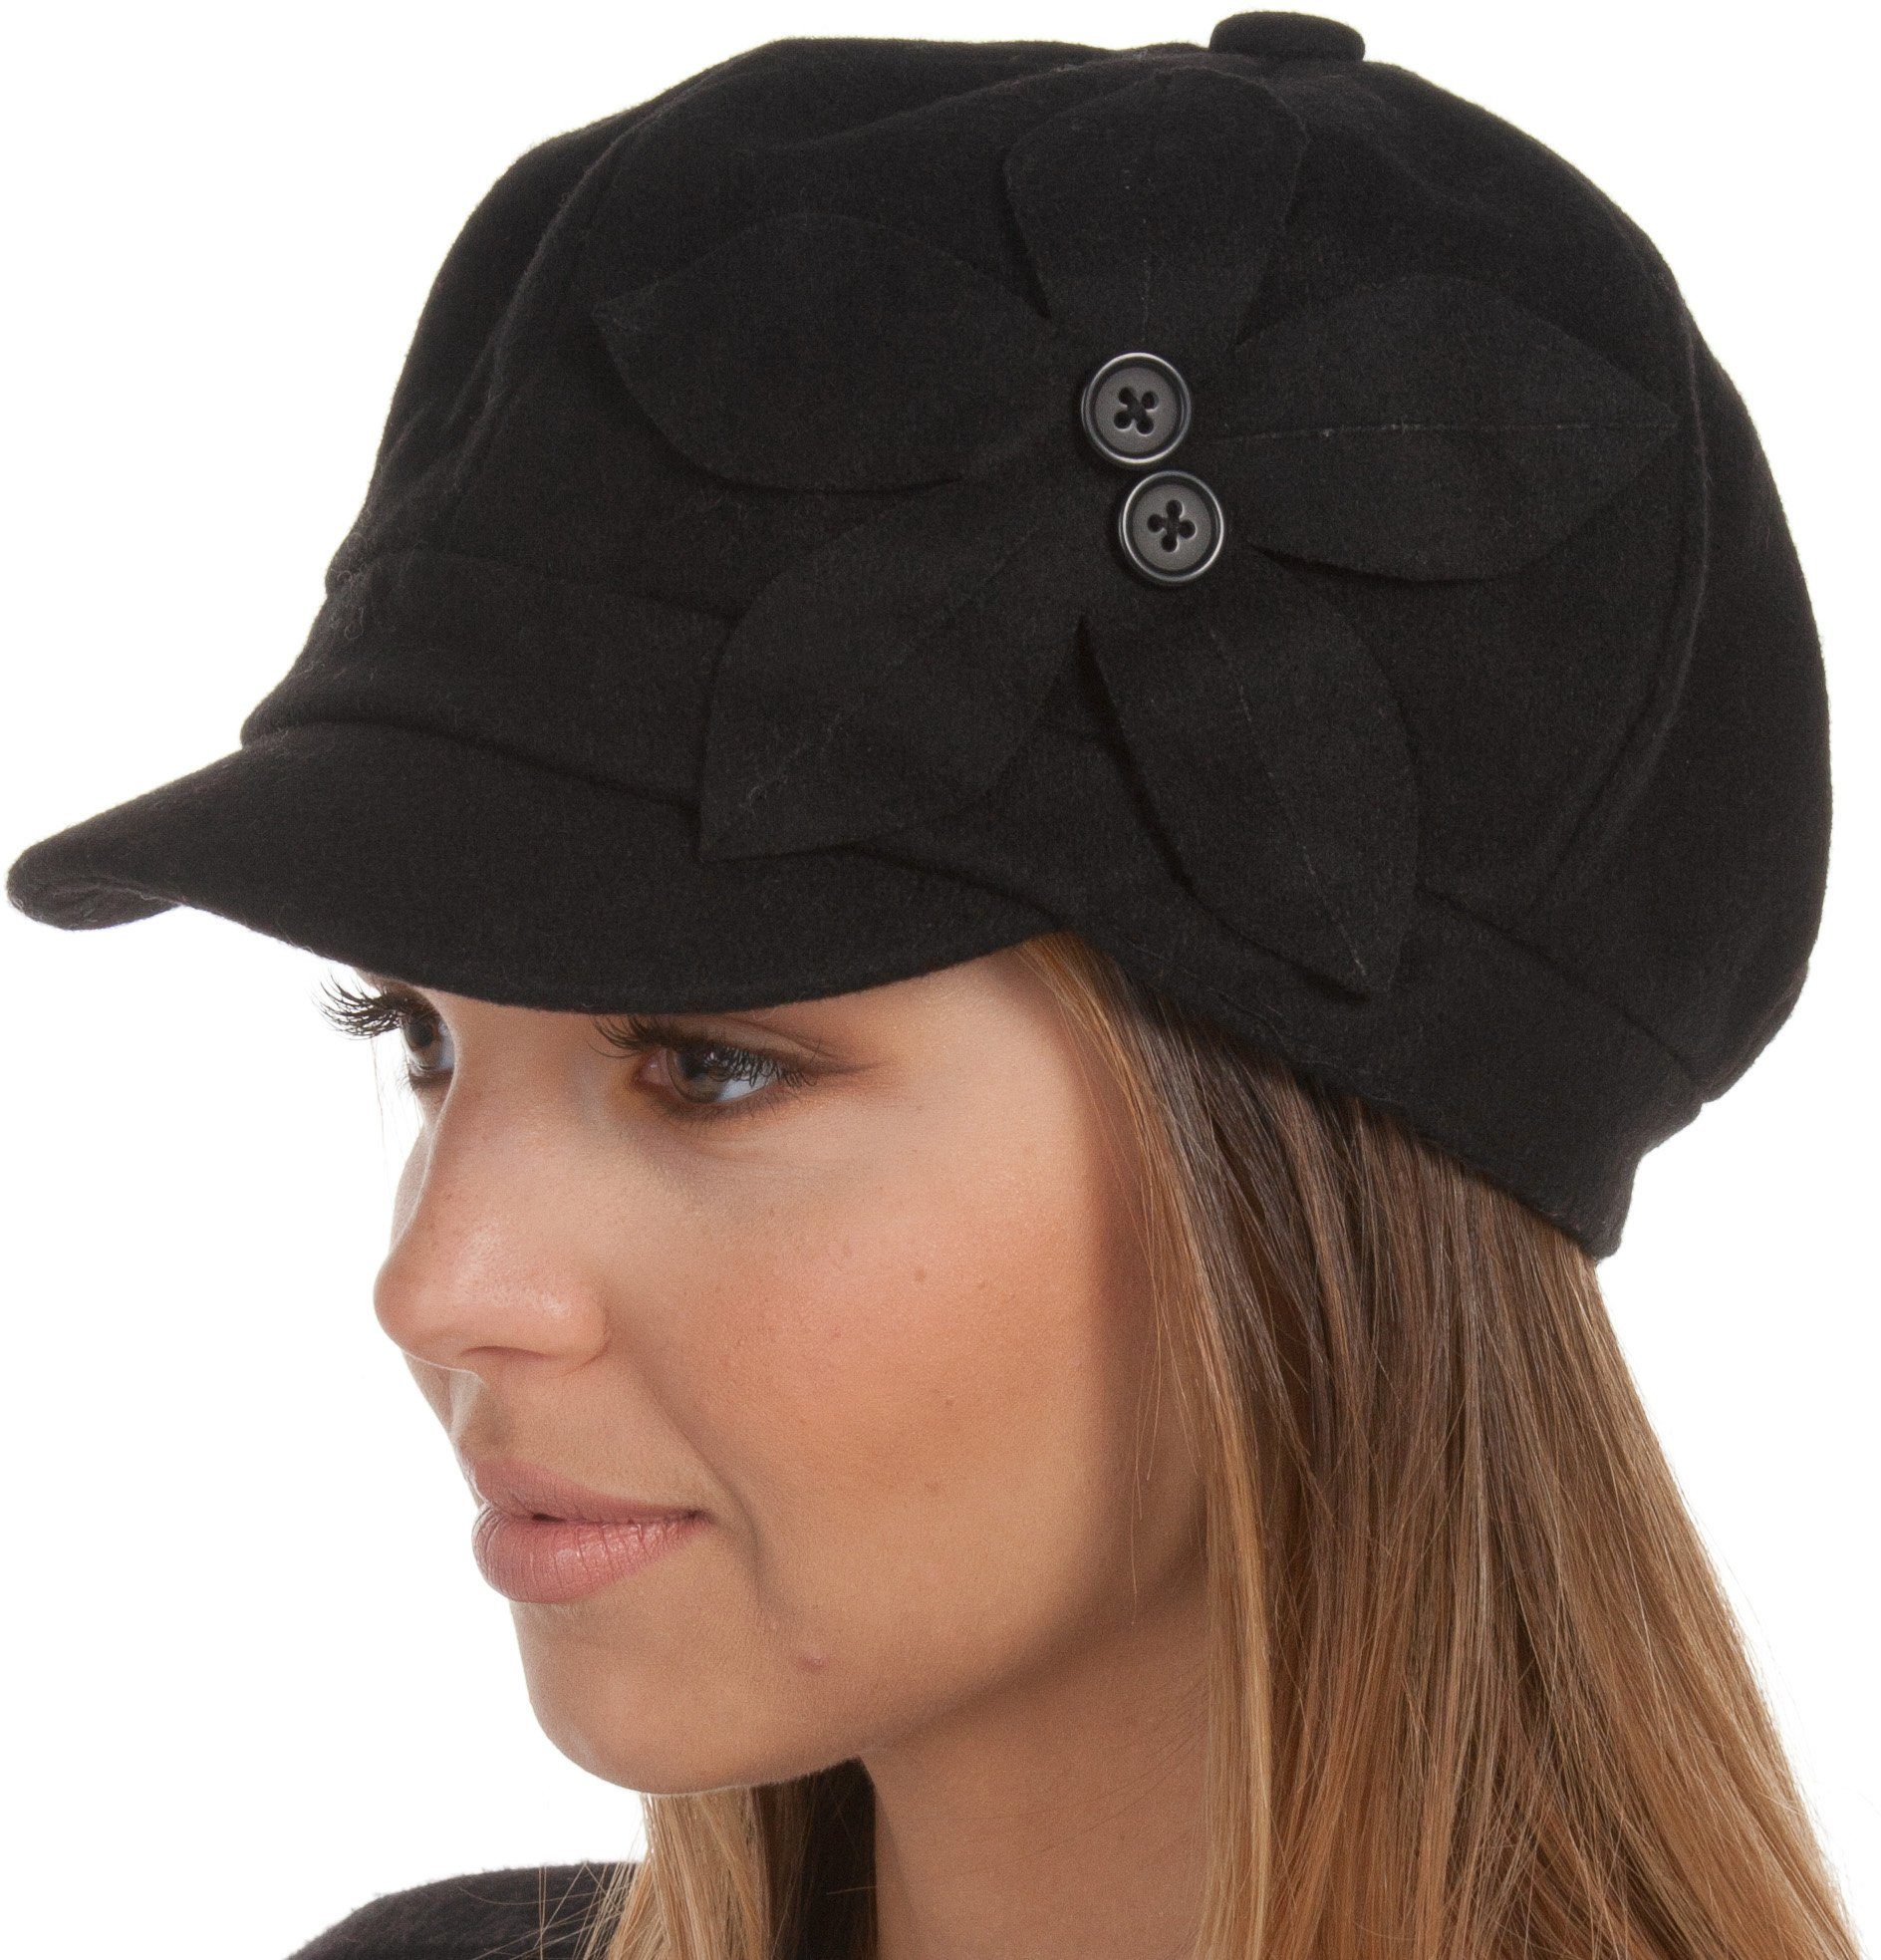 Sakkas 405BC Sasha Wool Newsboy Cabbie Hat with Button Flower - Black - One Size by Sakkas